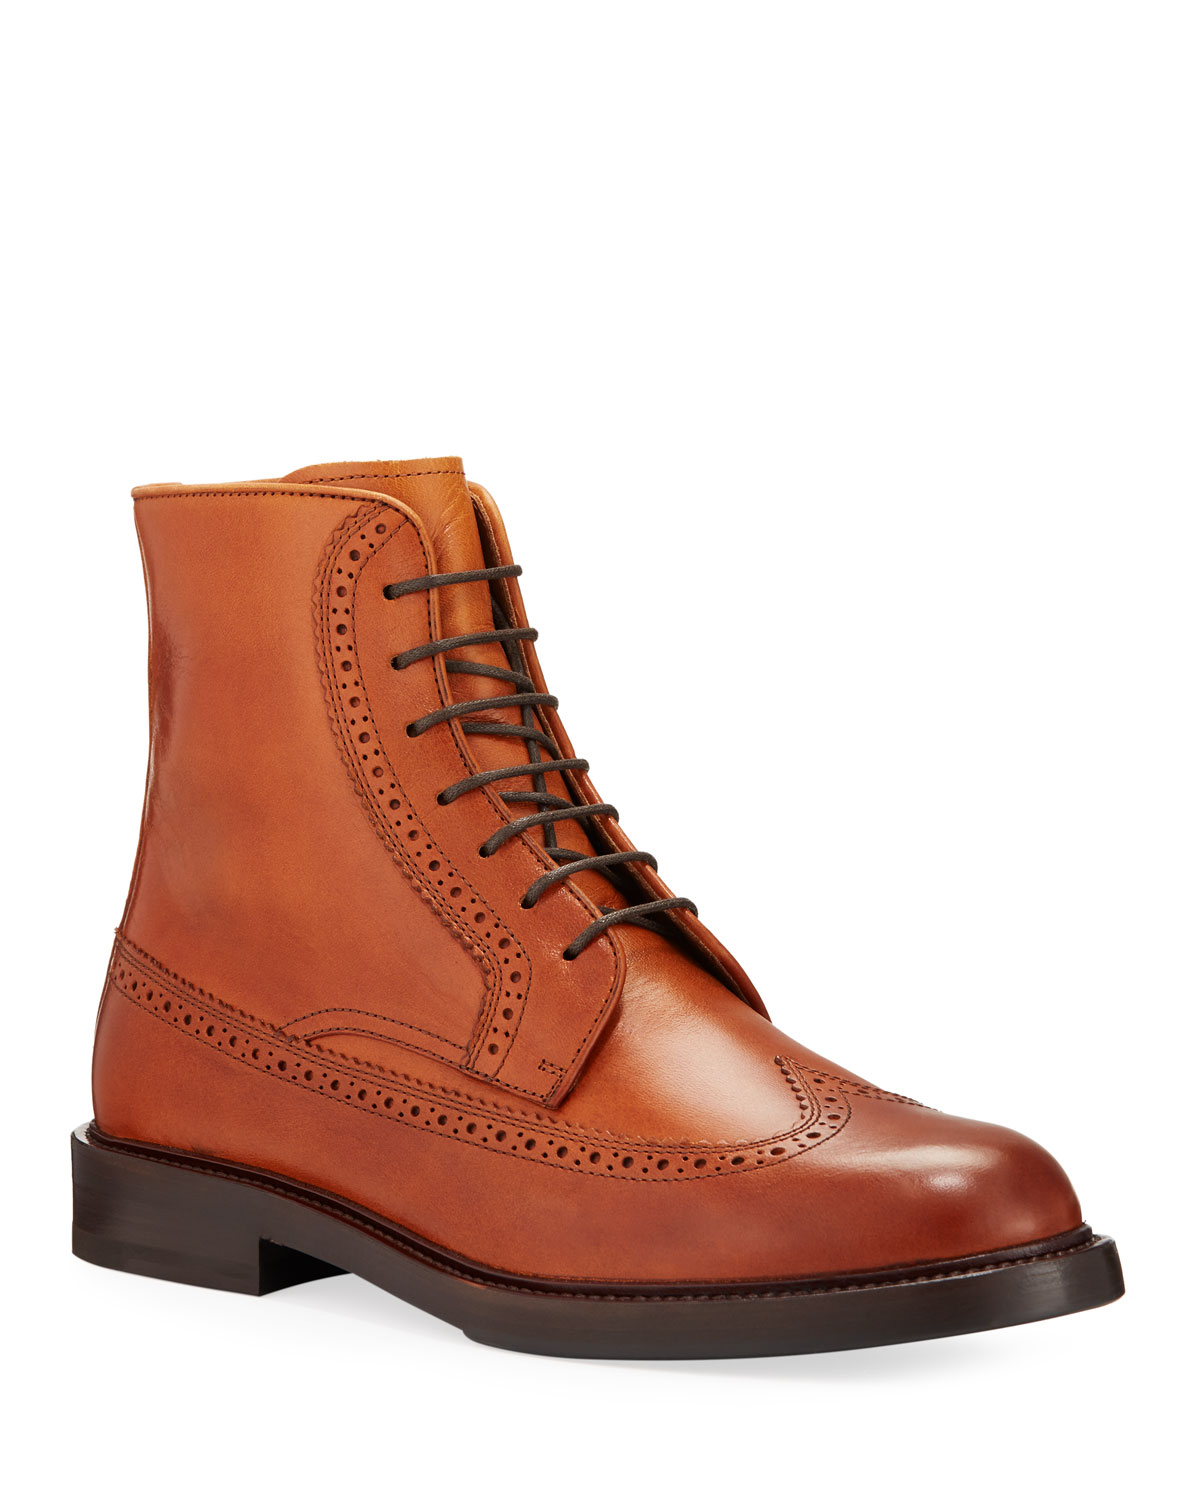 Men's Brogue Leather Derby Boots